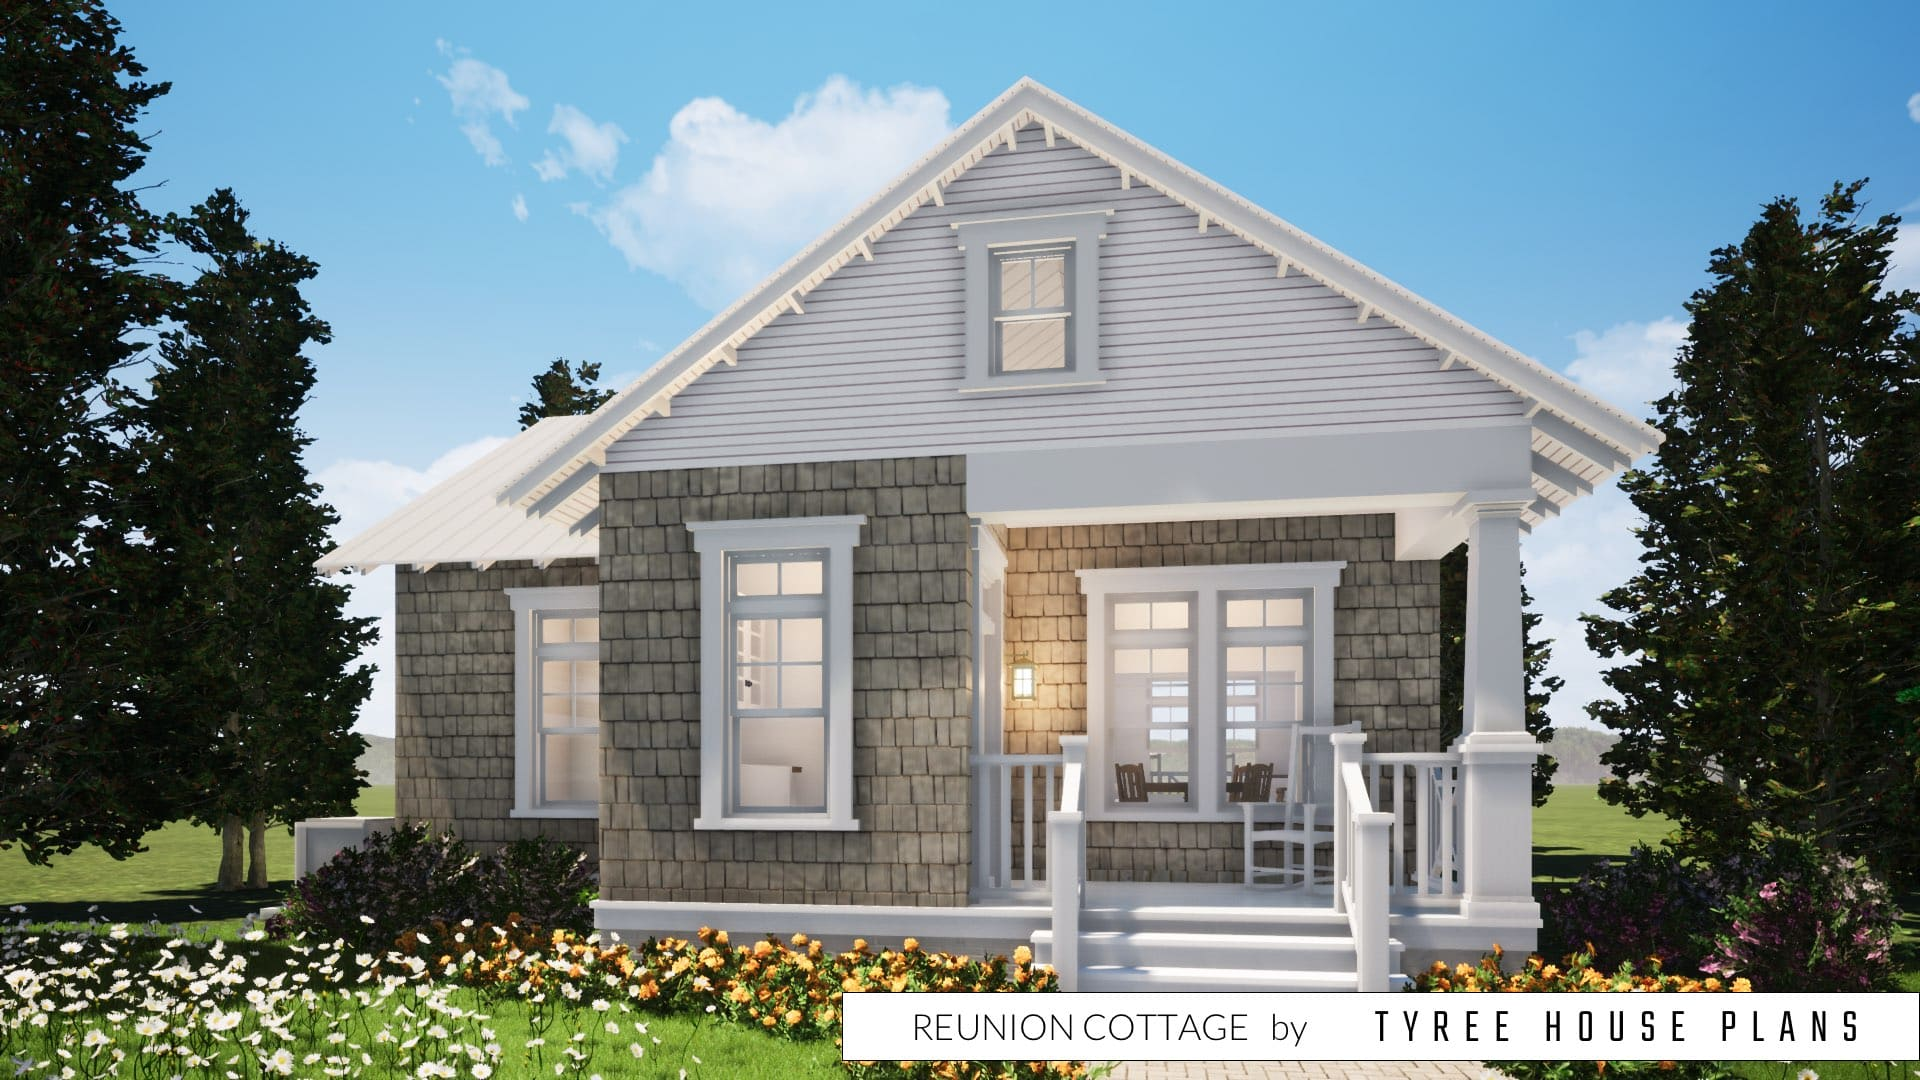 Reunion Cottage House Plan by Tyree House Plans